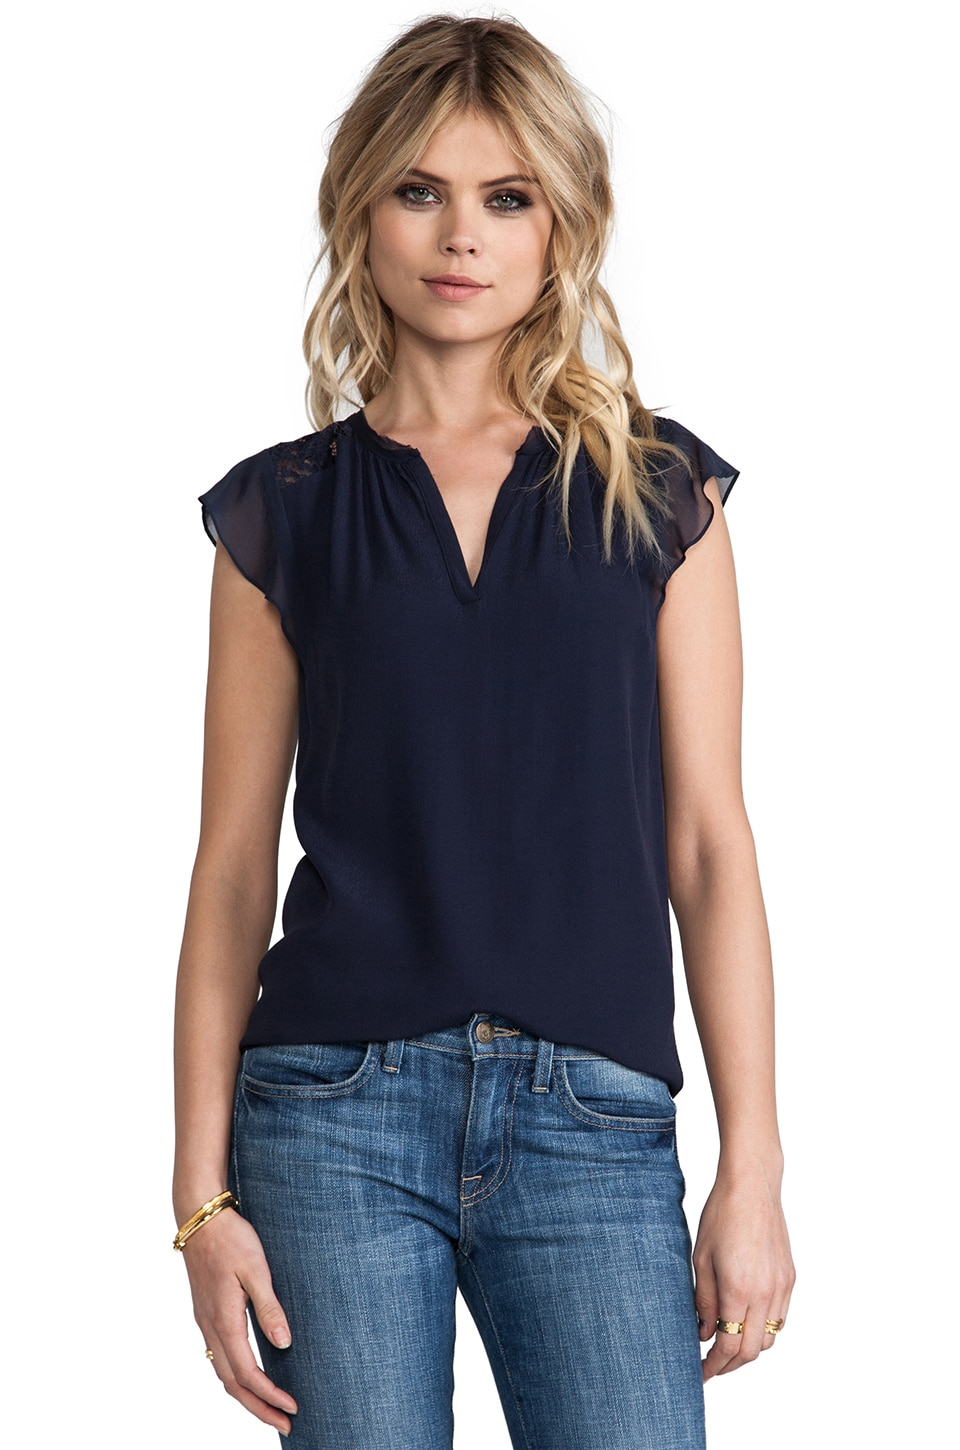 Rebecca Taylor Crepe & Lace Tee in Smoky Blue